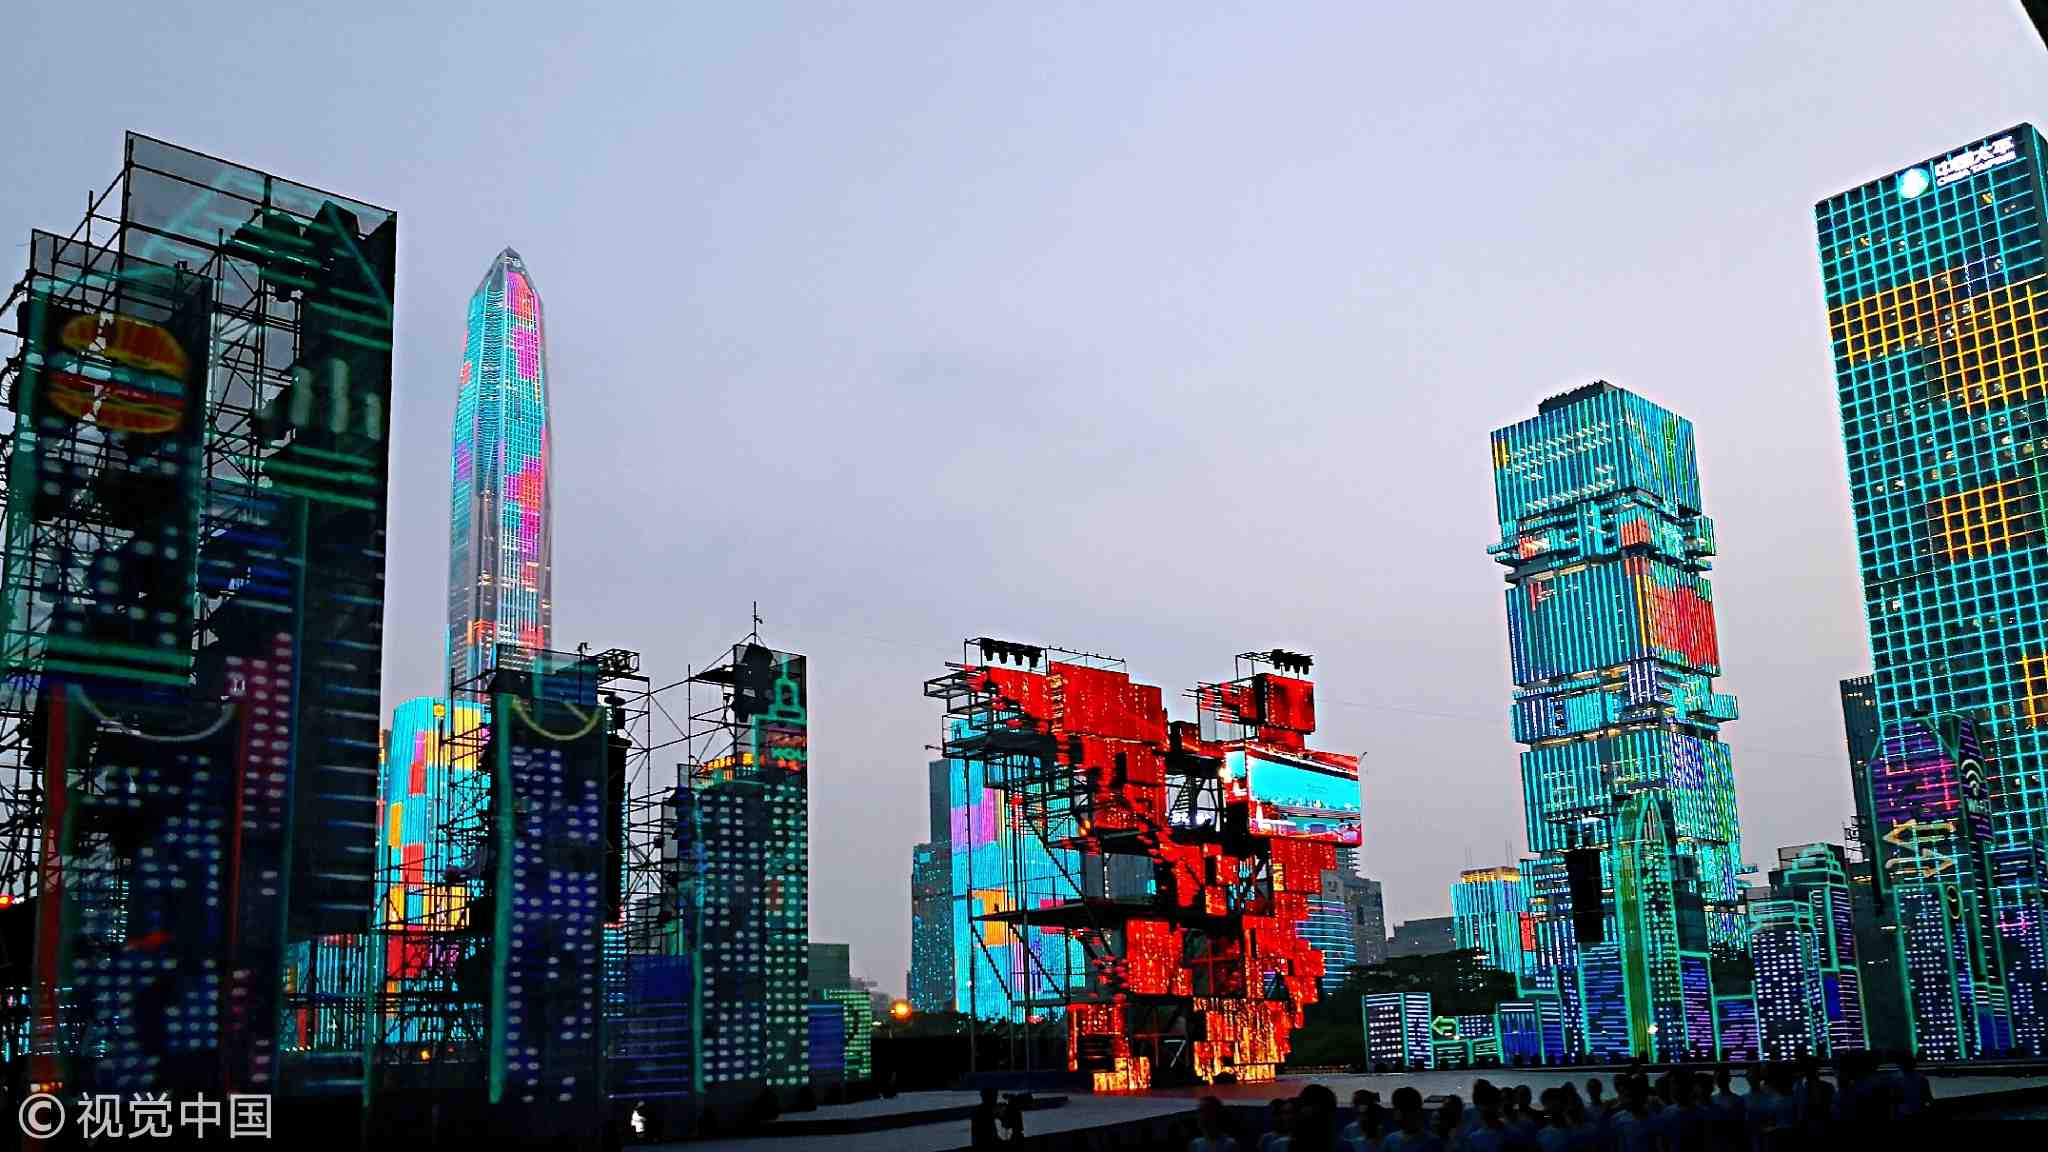 Shenzhen celebrates China's 40th anniversary of reform and opening up with light show